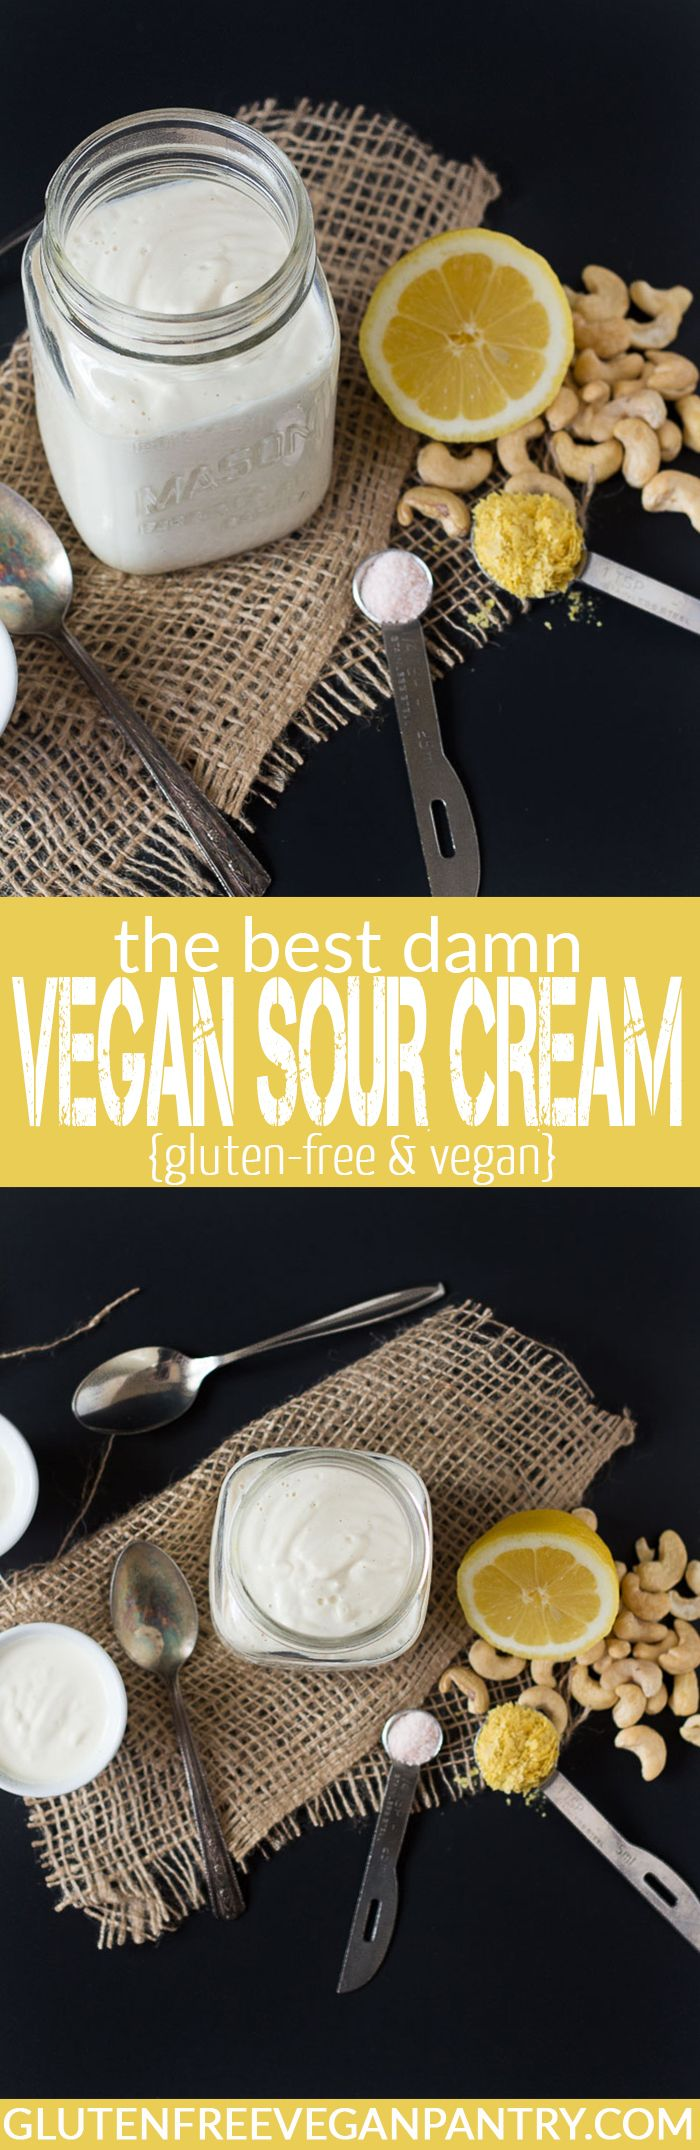 The Best Damn Vegan Sour Cream - 5 ingredients, 10 minutes, pure deliciousness | glutenfreeveganpantry.com